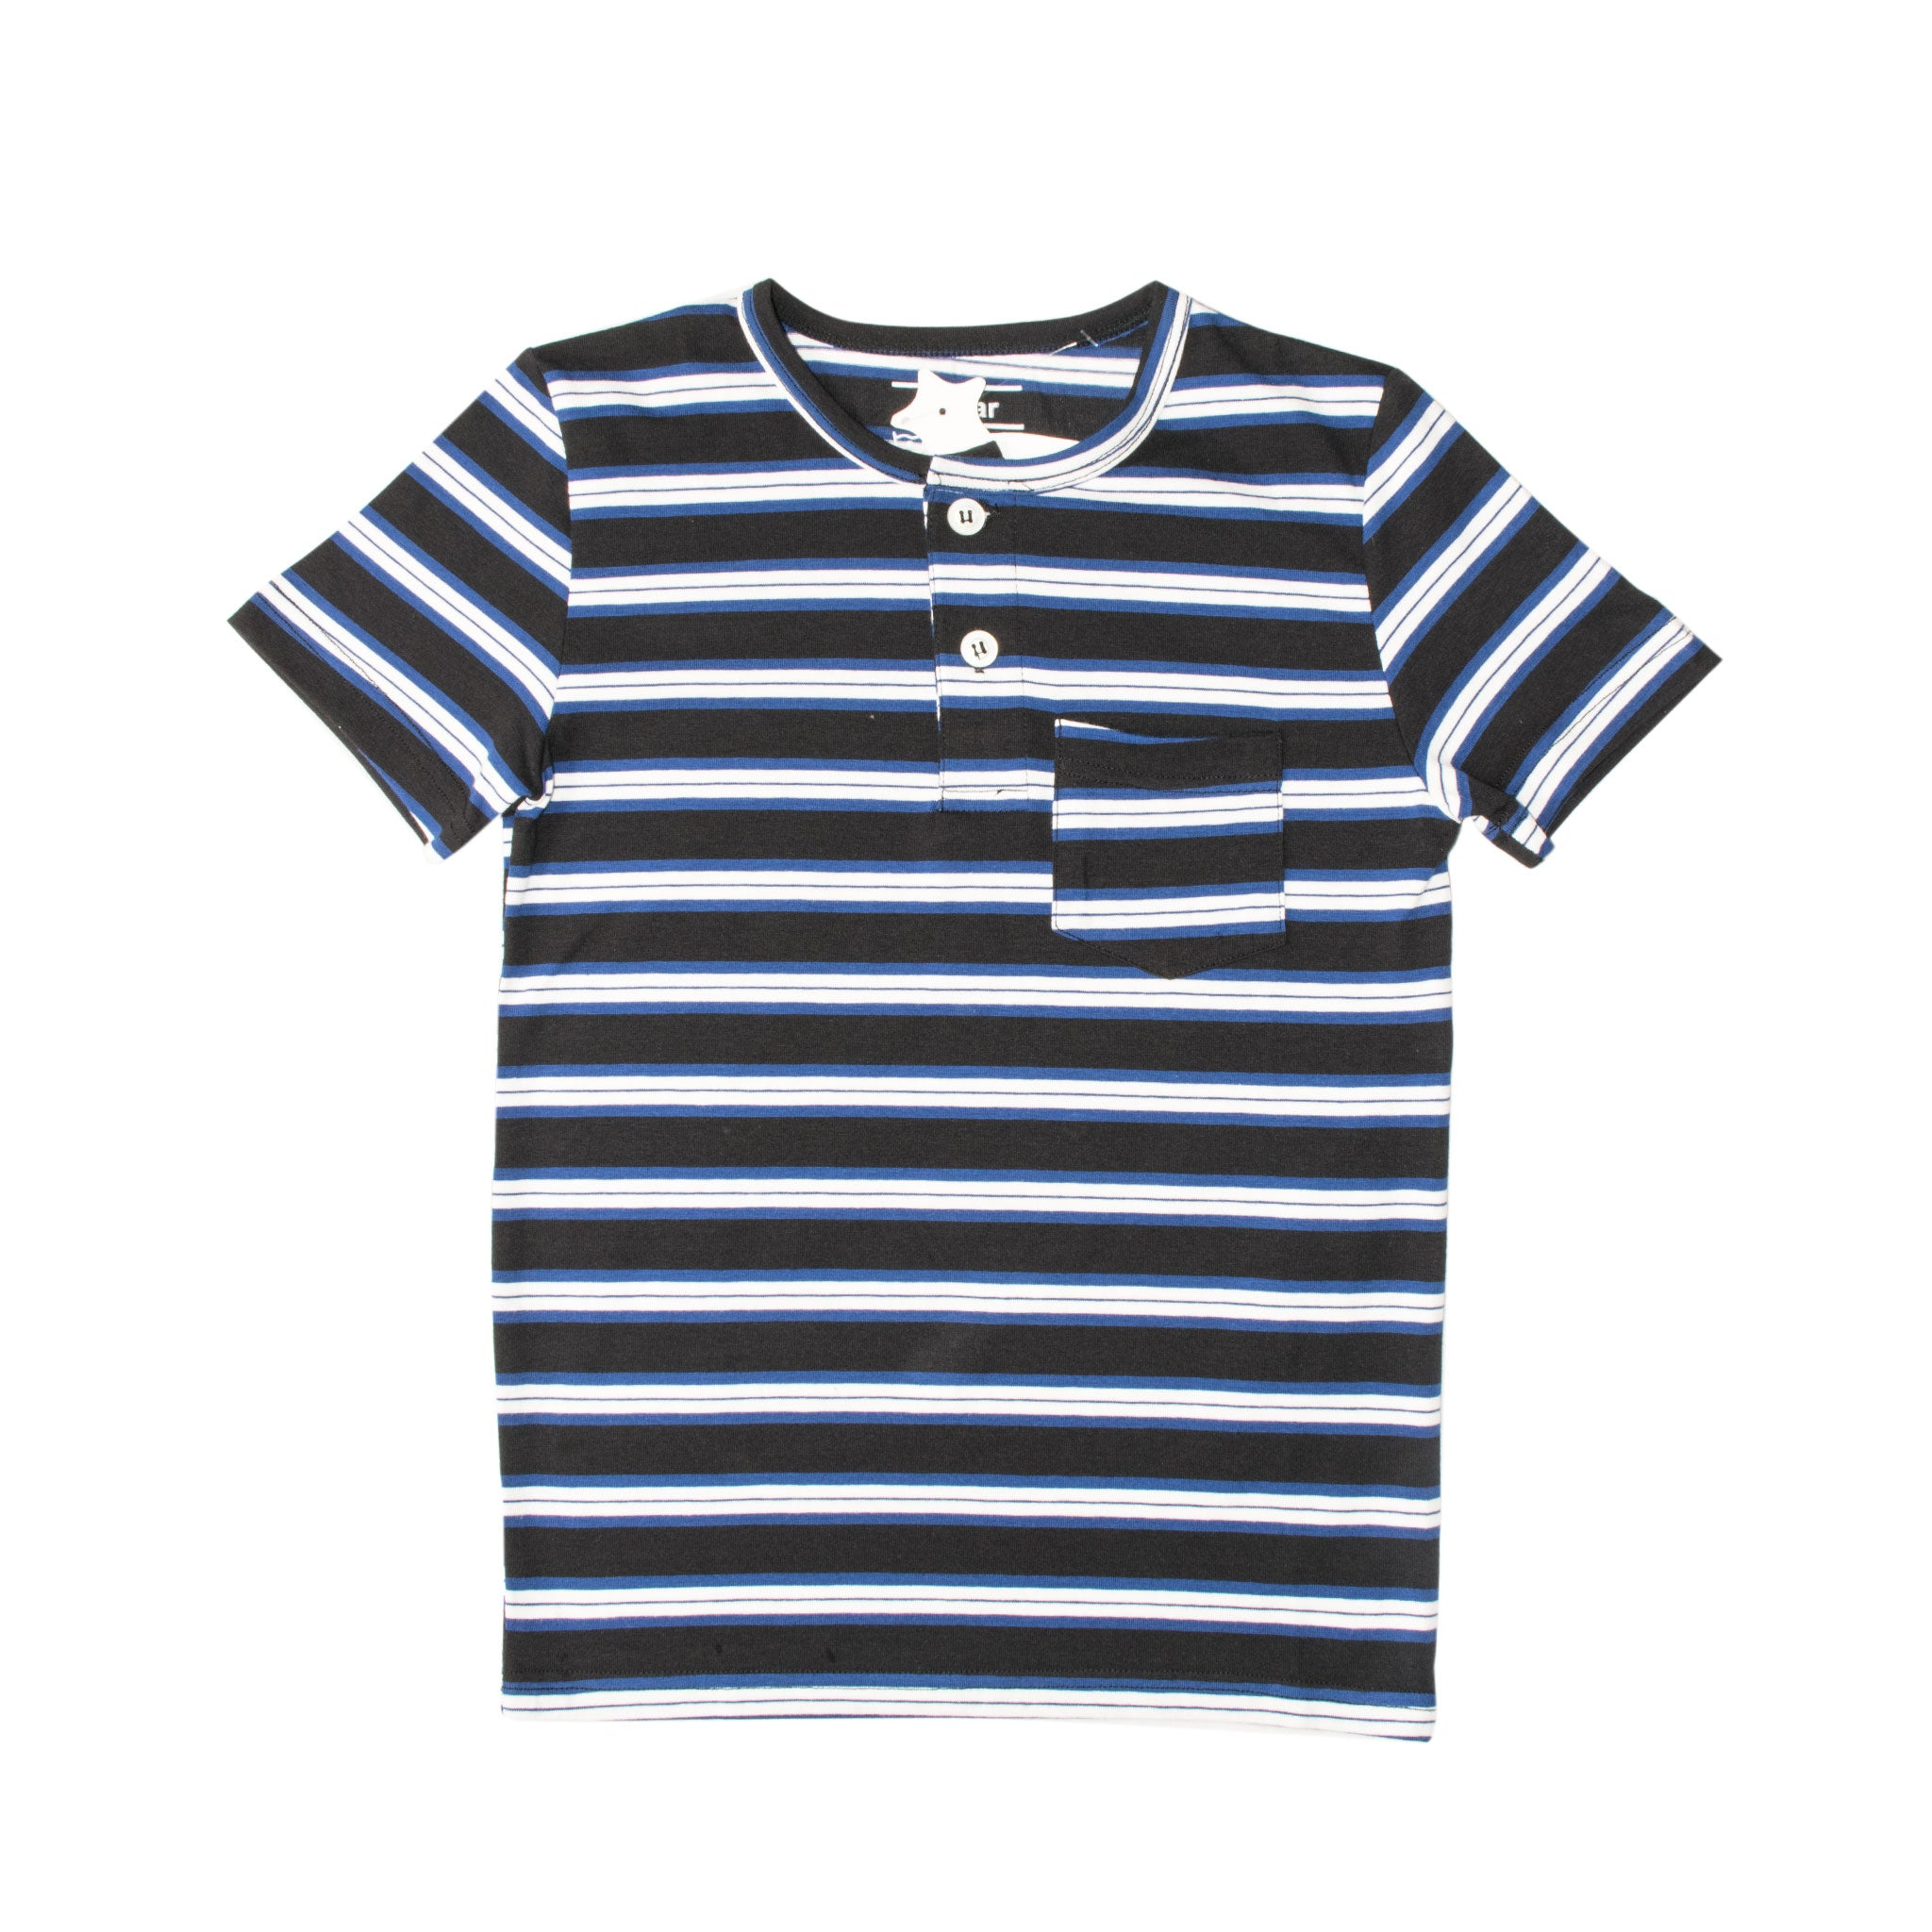 BOY'S S/S HENLEY-BLACK/BLUE/WHITE-SSSS20KB-1108